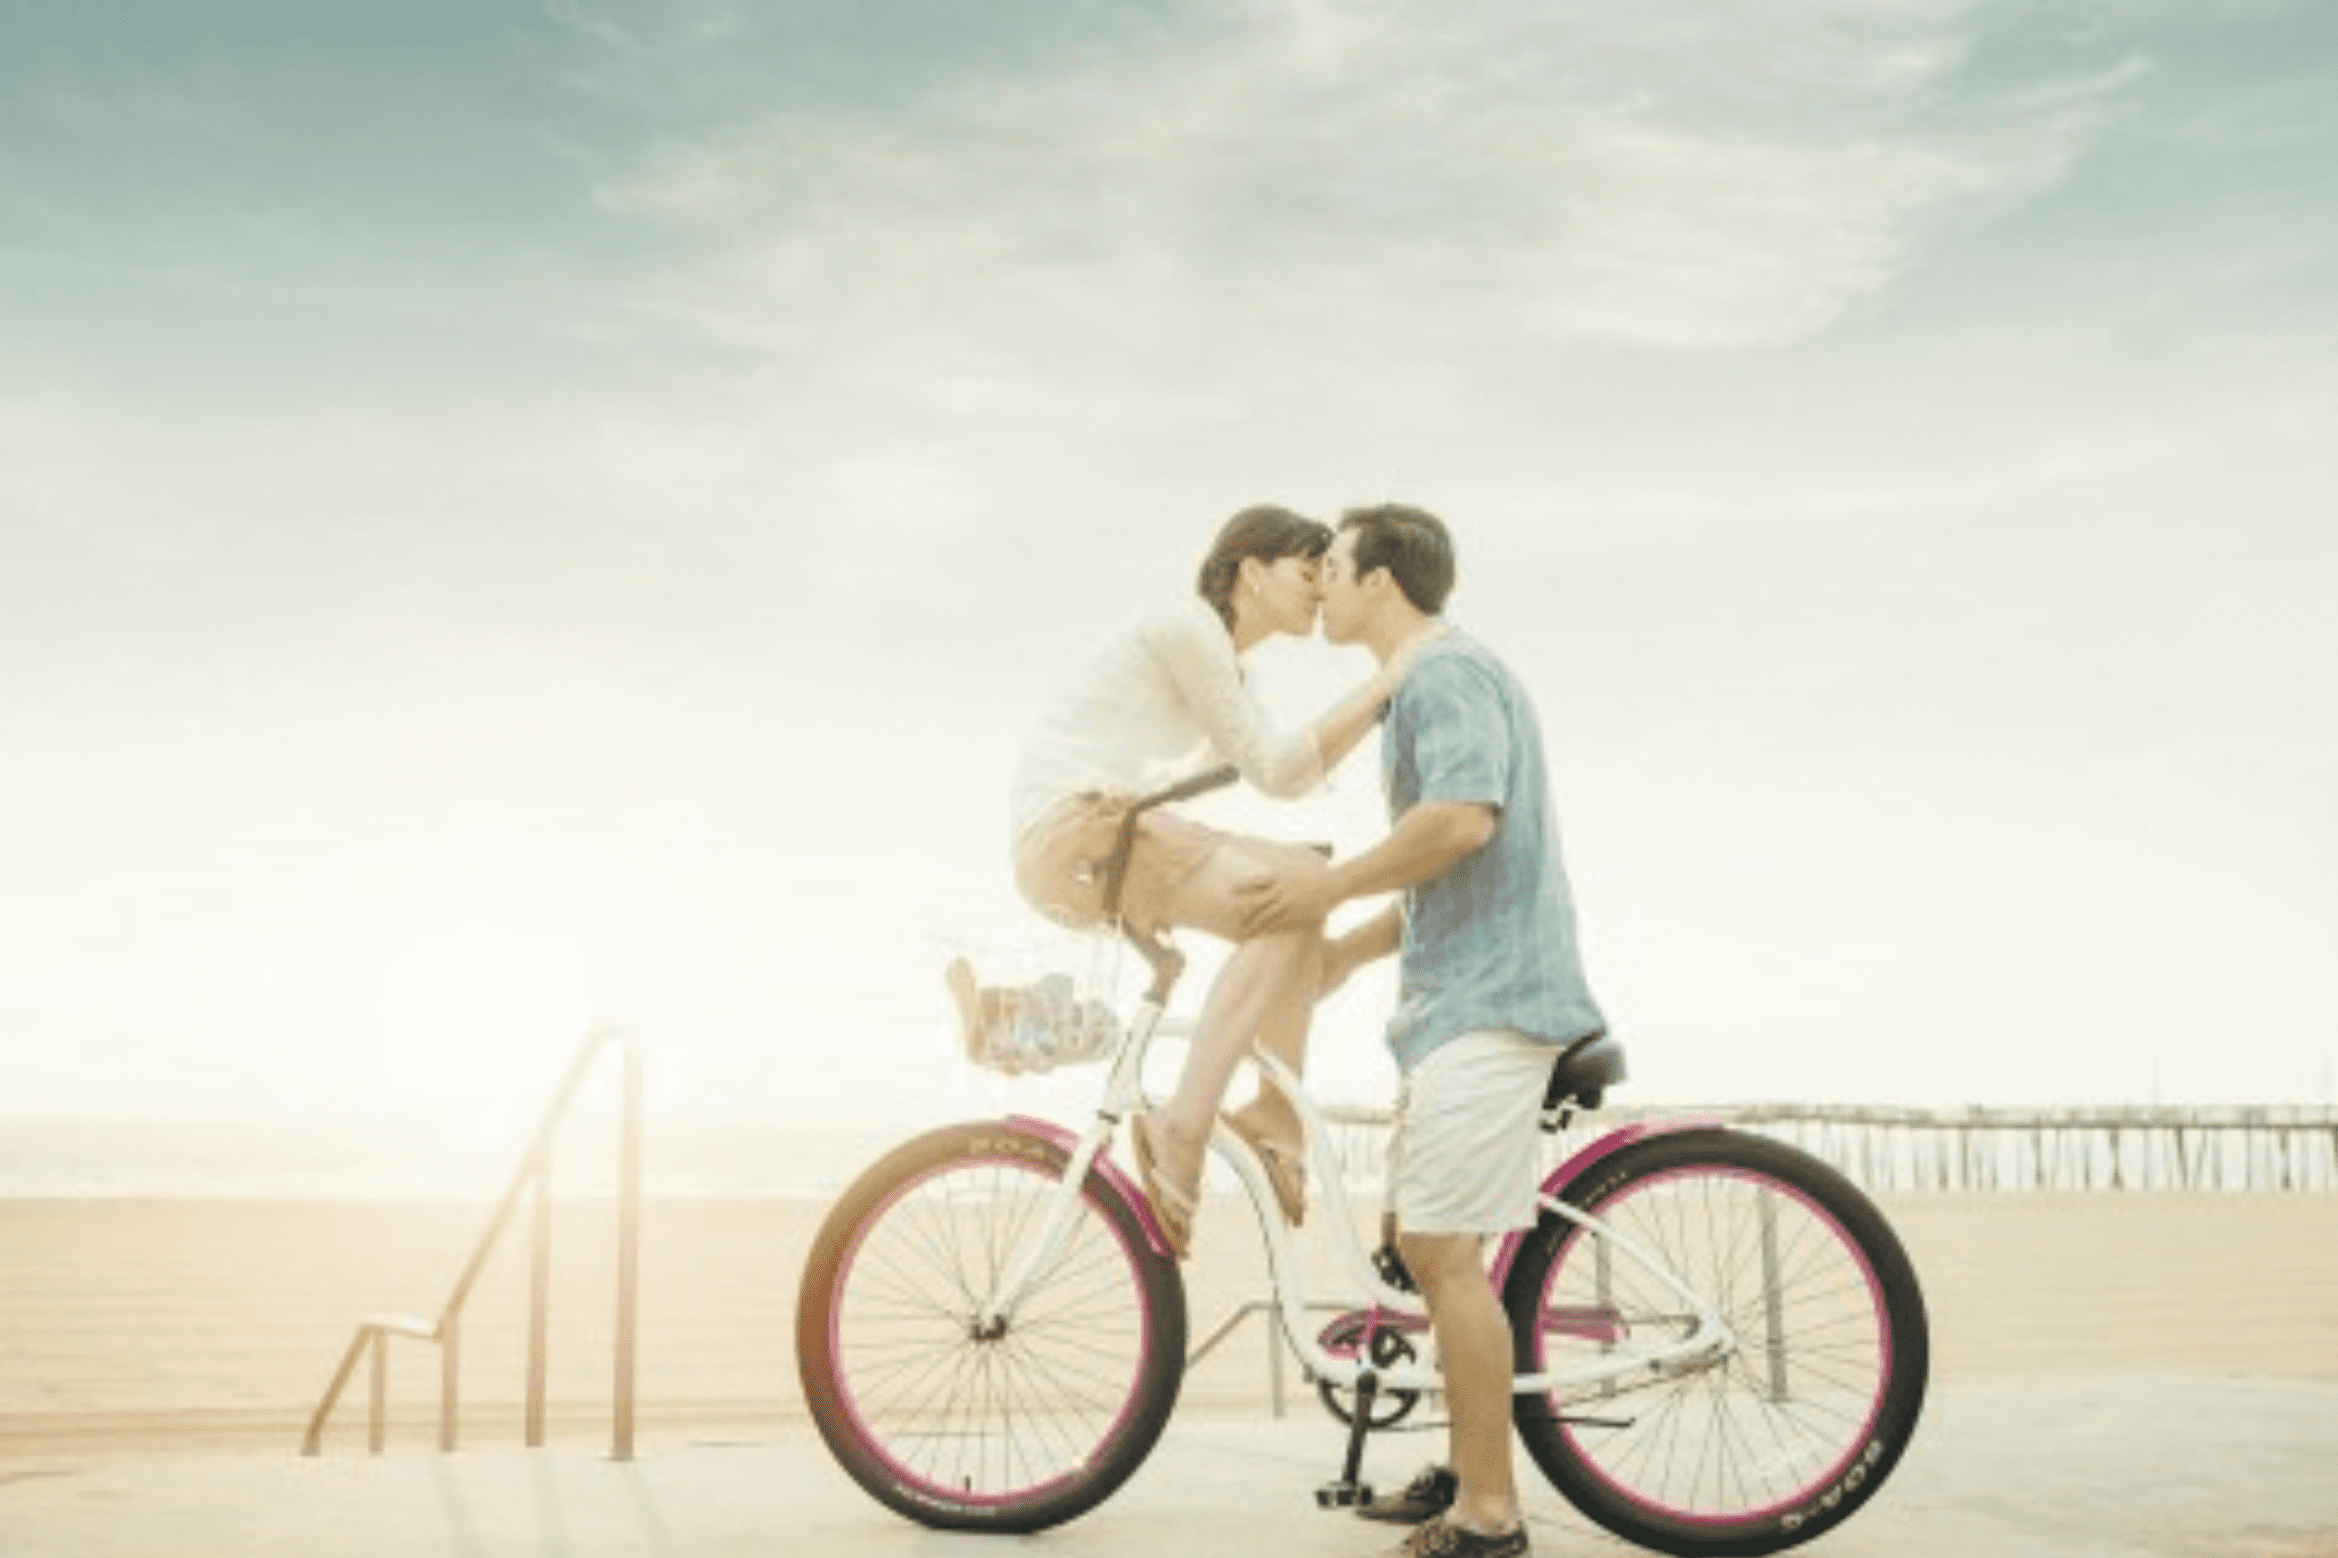 Couple kissing on a bike on Virginia Beach,Virginia wearing light weight button down shirts and shorts.